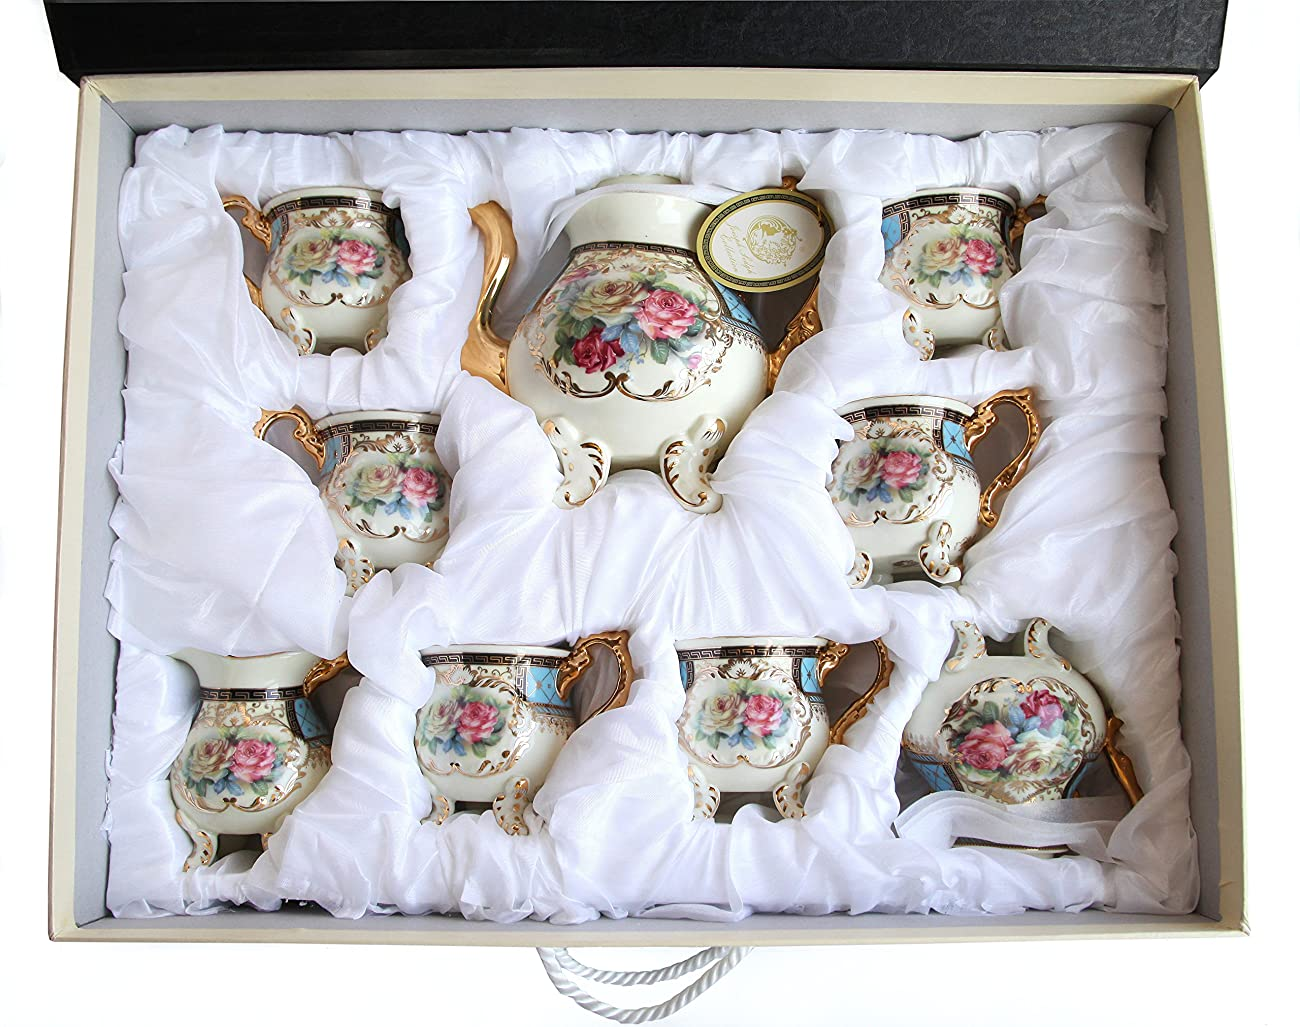 Royal Porcelain 10-Piece Vintage Floral Dining Tea Cup SET, Service for 6, Handmade & Hand-painted, 24K Gold-plated 6